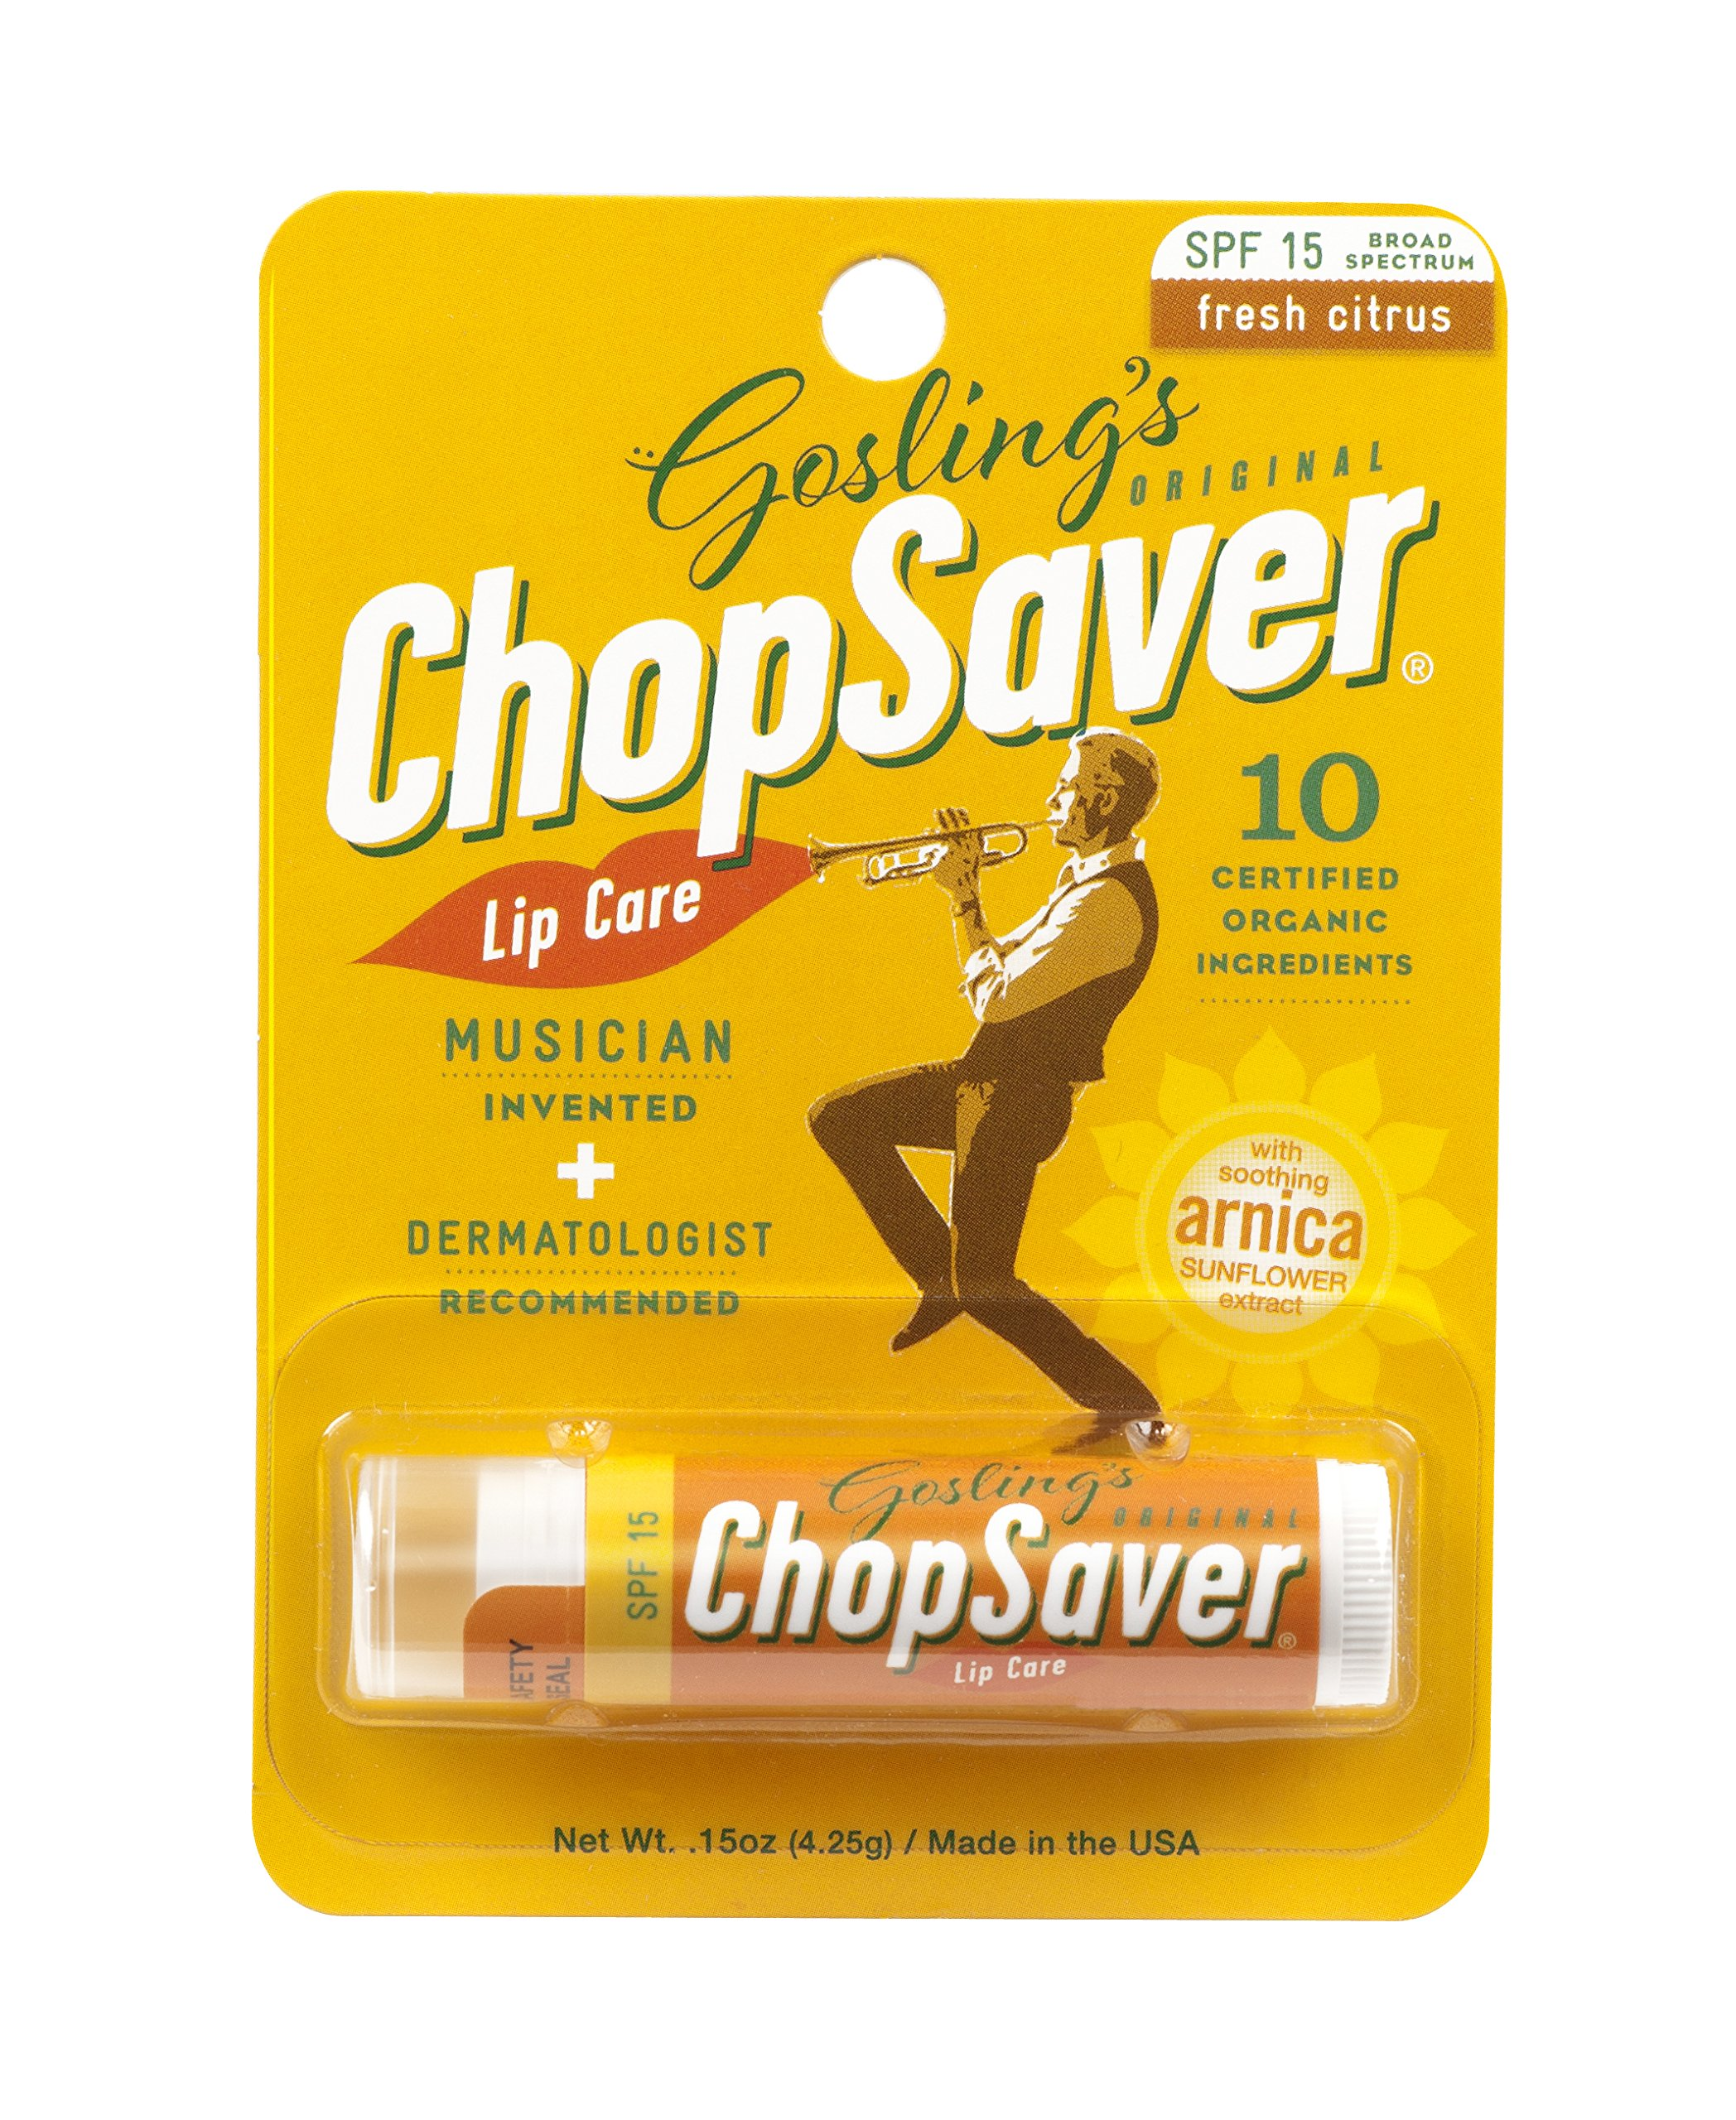 Goslings Original ChopSaver SPF 15 Lip Care, 0.15 Ounce (Pack of 6) by ChopSaver